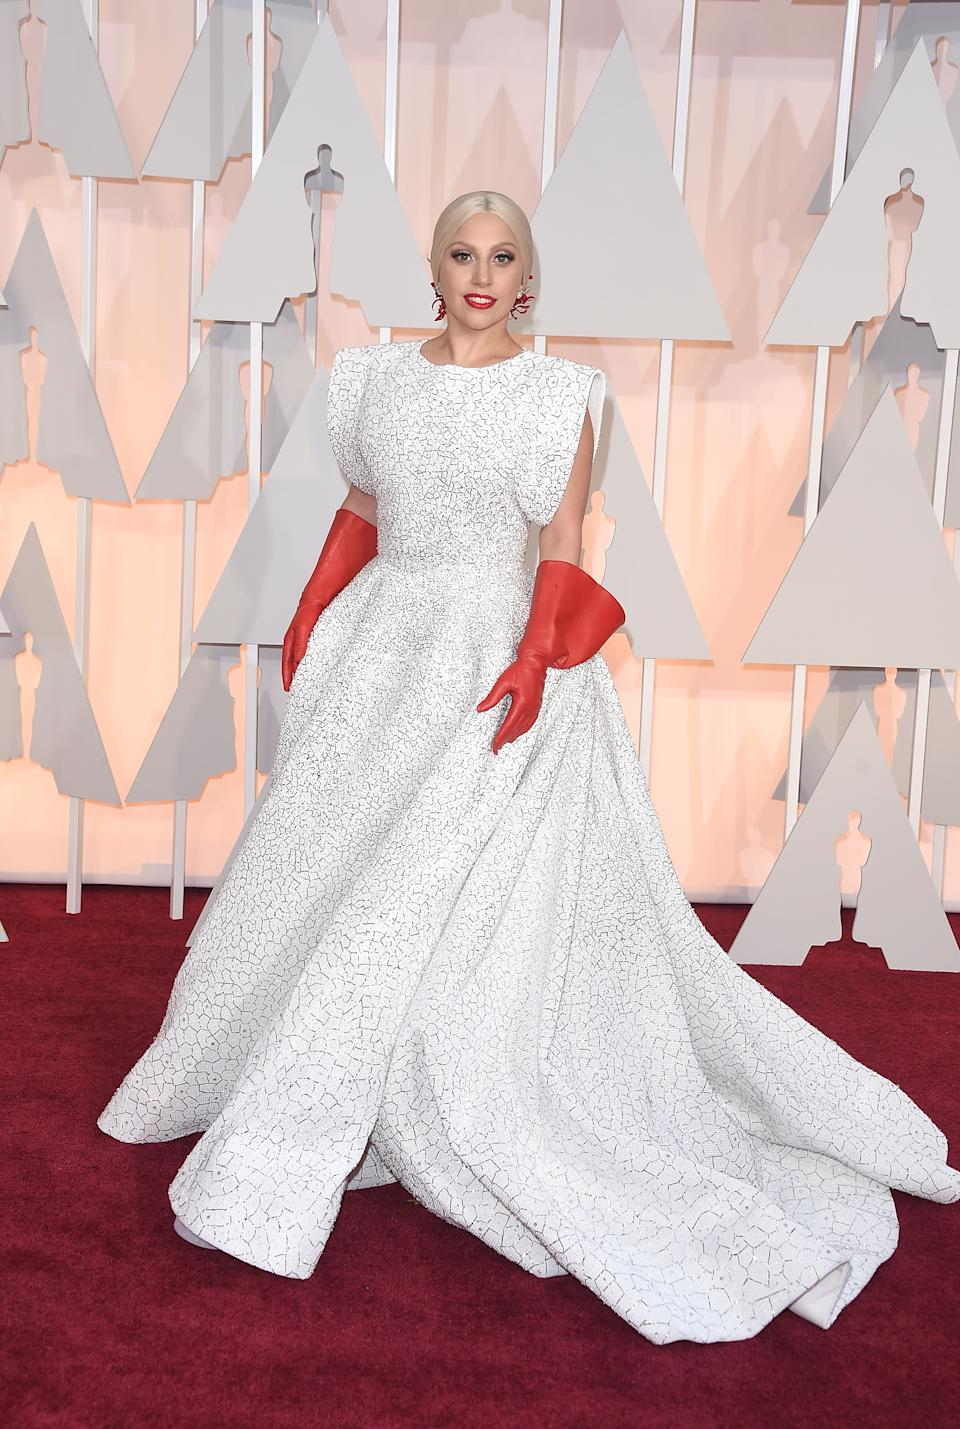 """<p>Years before she took home a statue of her own, Gaga made her Oscar debut in a billowing white gown with bizarre red leather gloves. The look spawned countless memes, but Gaga redeemed herself later that night with a show-stopping performance of """"The Sound of Music.""""</p>"""